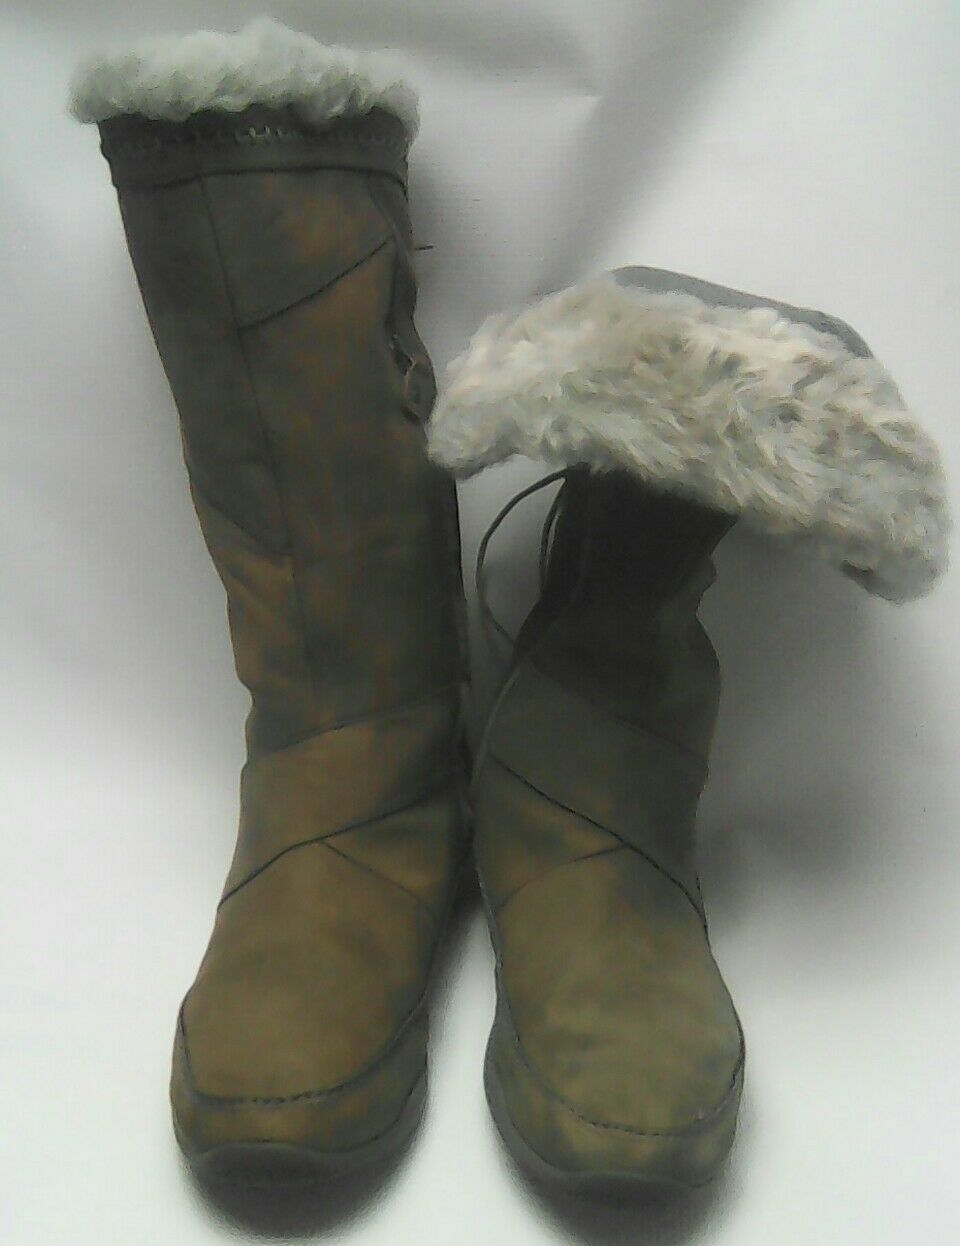 The North Face Brown Suede Primaloft Waterproof Insulated Boots Women's 8.5